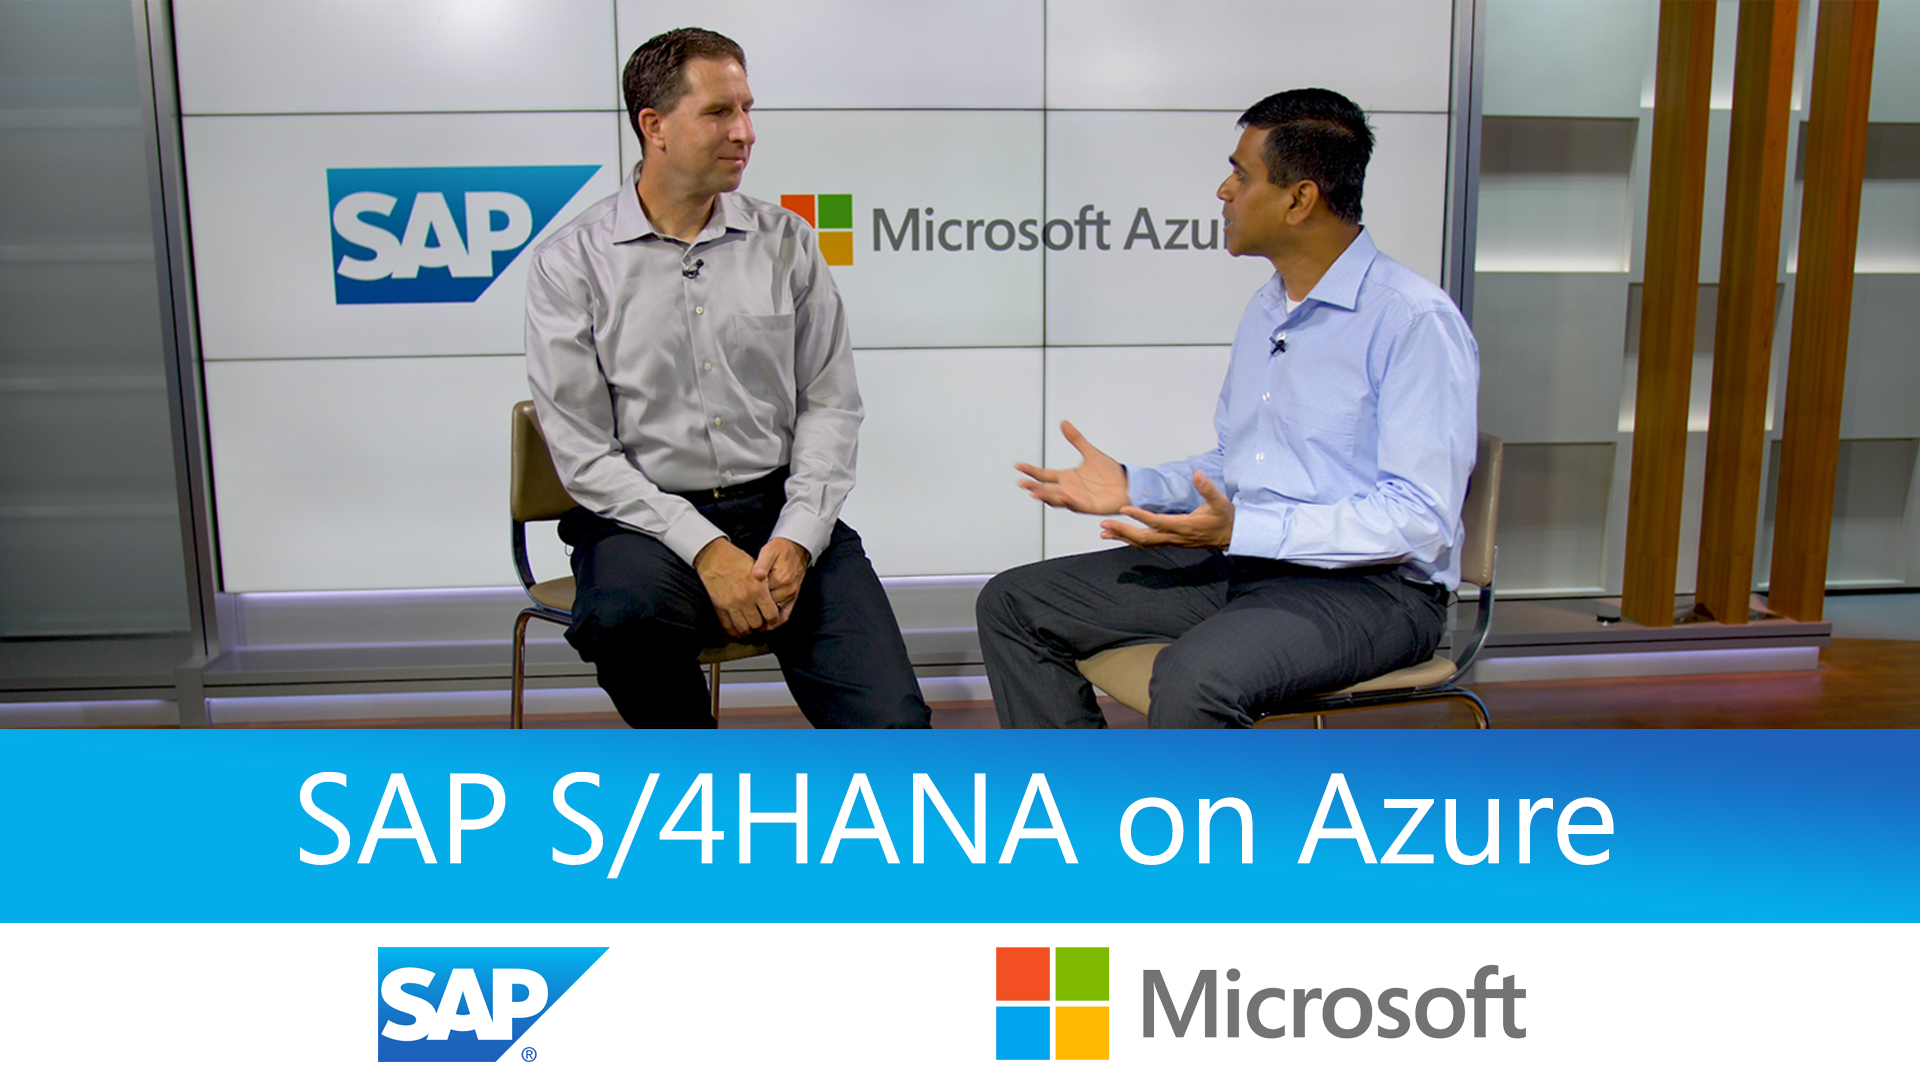 SAP S/4HANA on Azure: Trust a partnership built on decades of experience